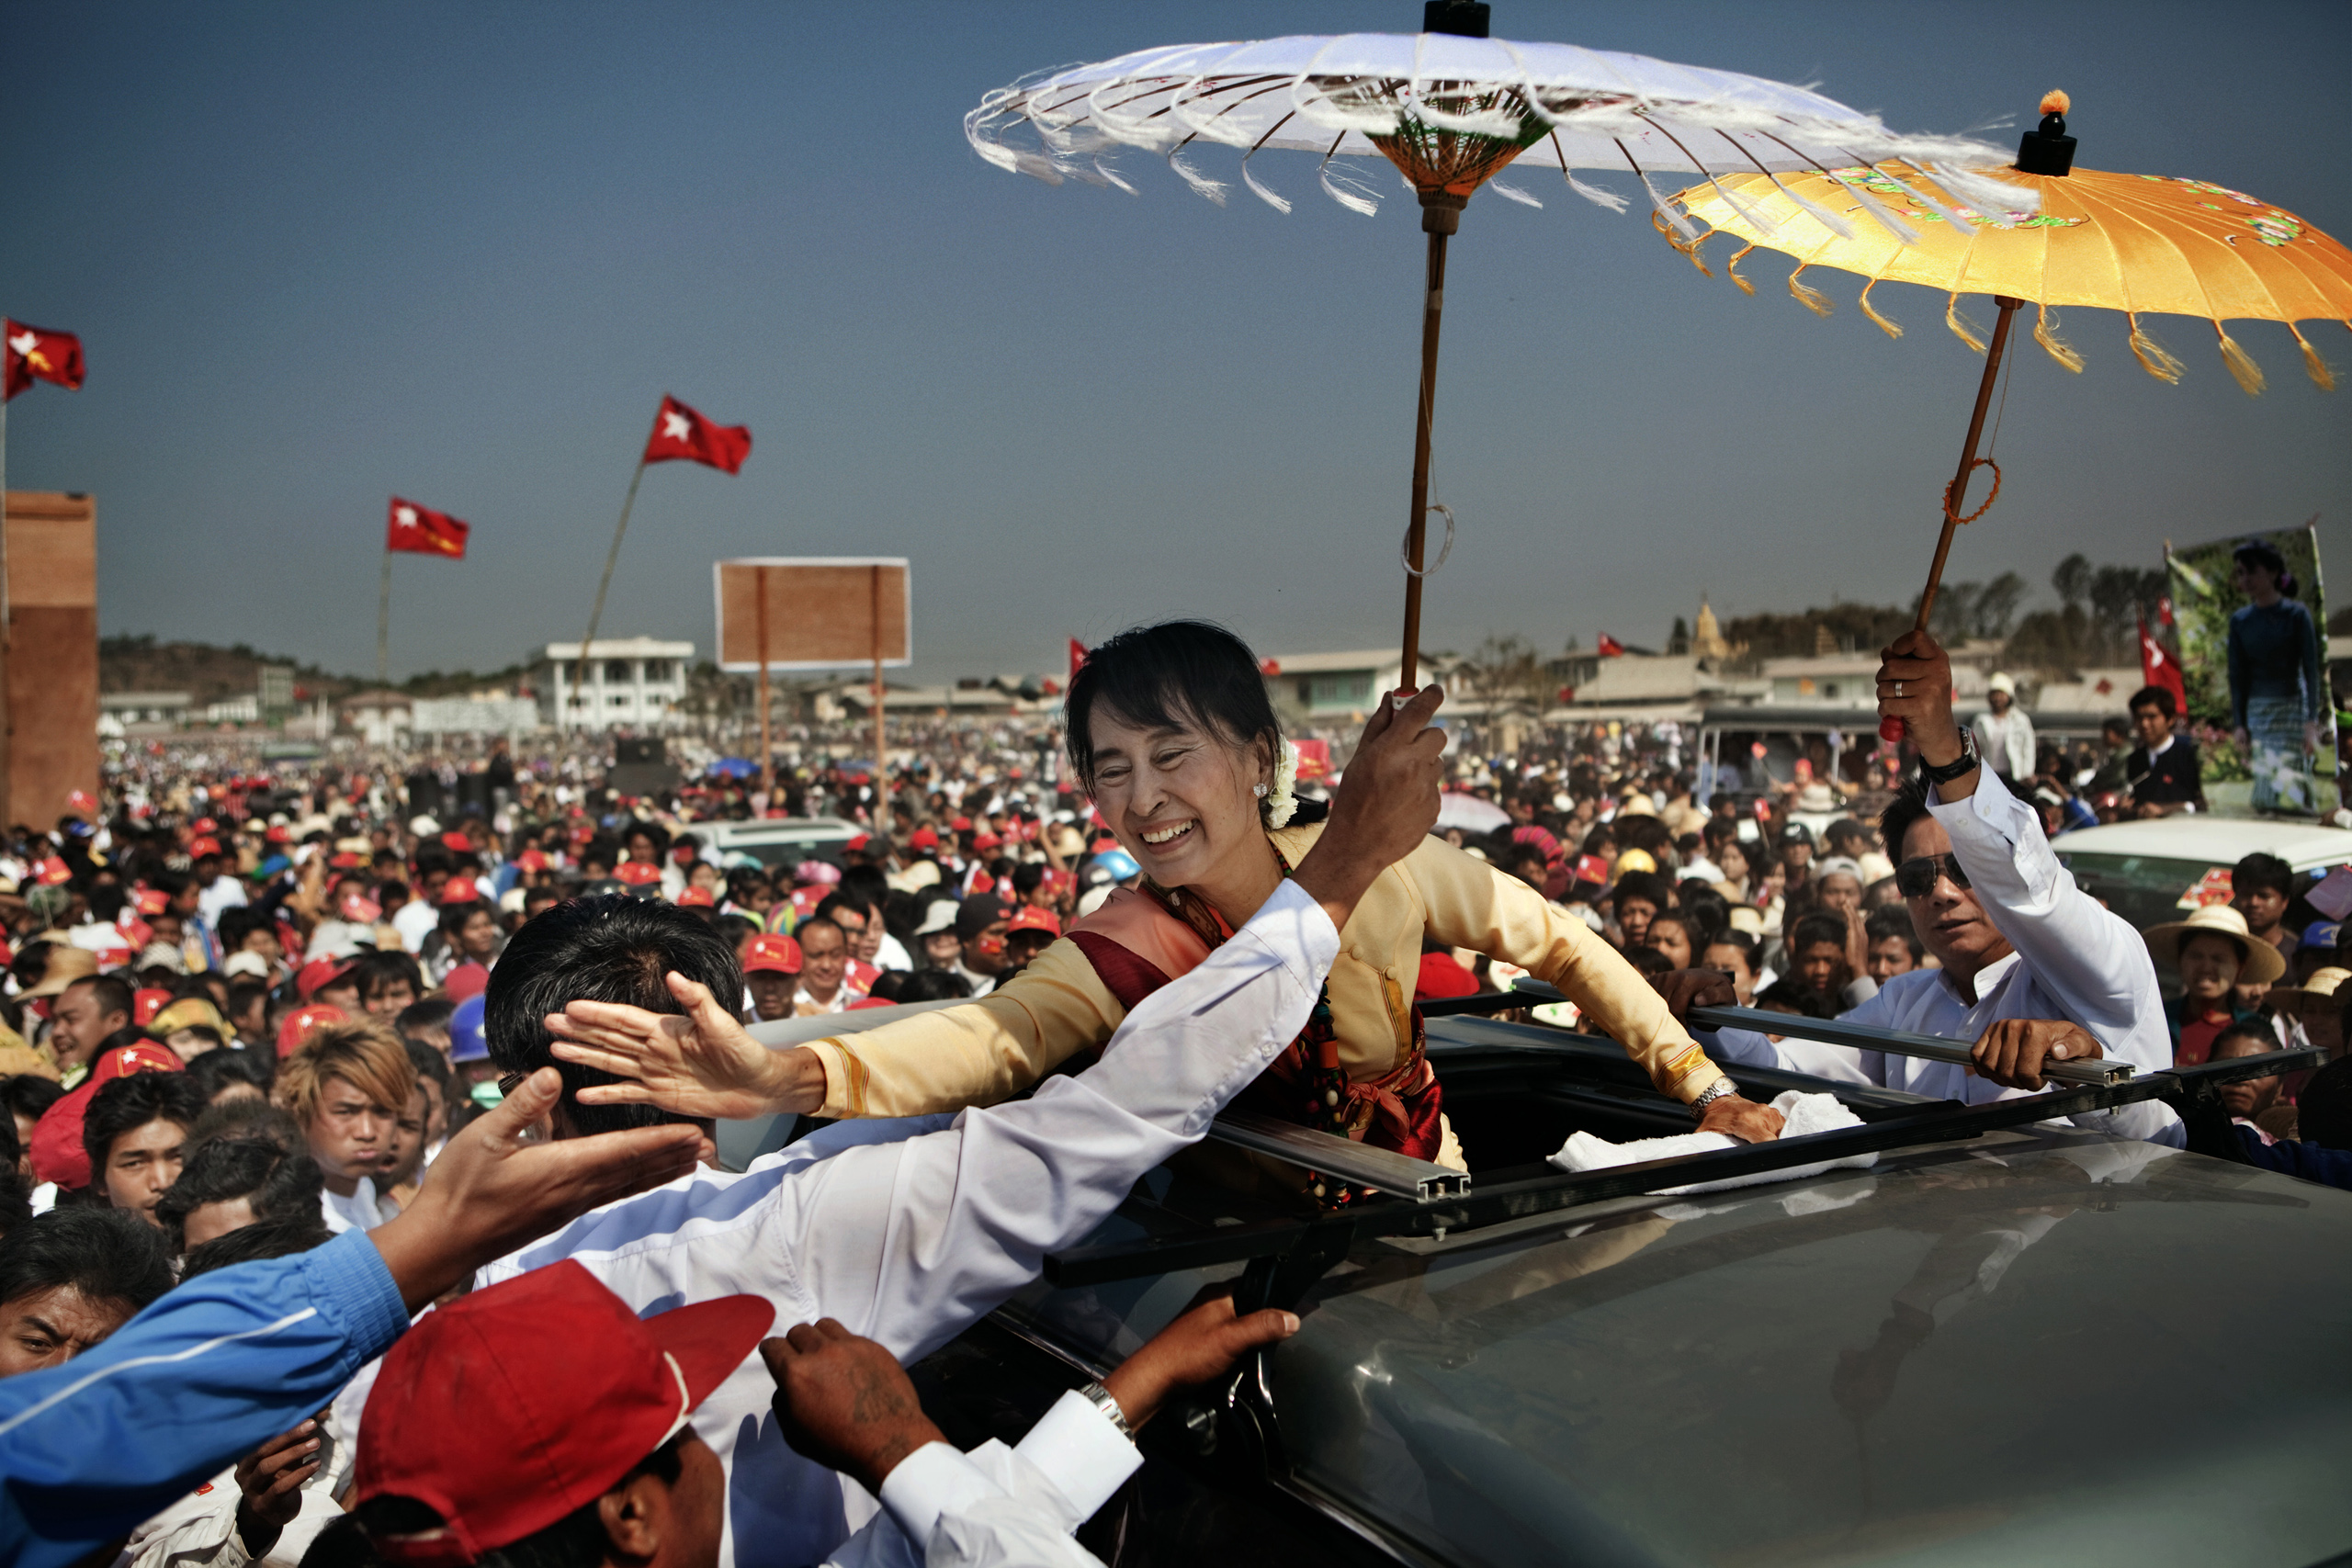 National League for Democracy (NLD) party leader Aung San Suu Kyi campaigns in Aungban, Shan State, Burma, March 1, 2012.